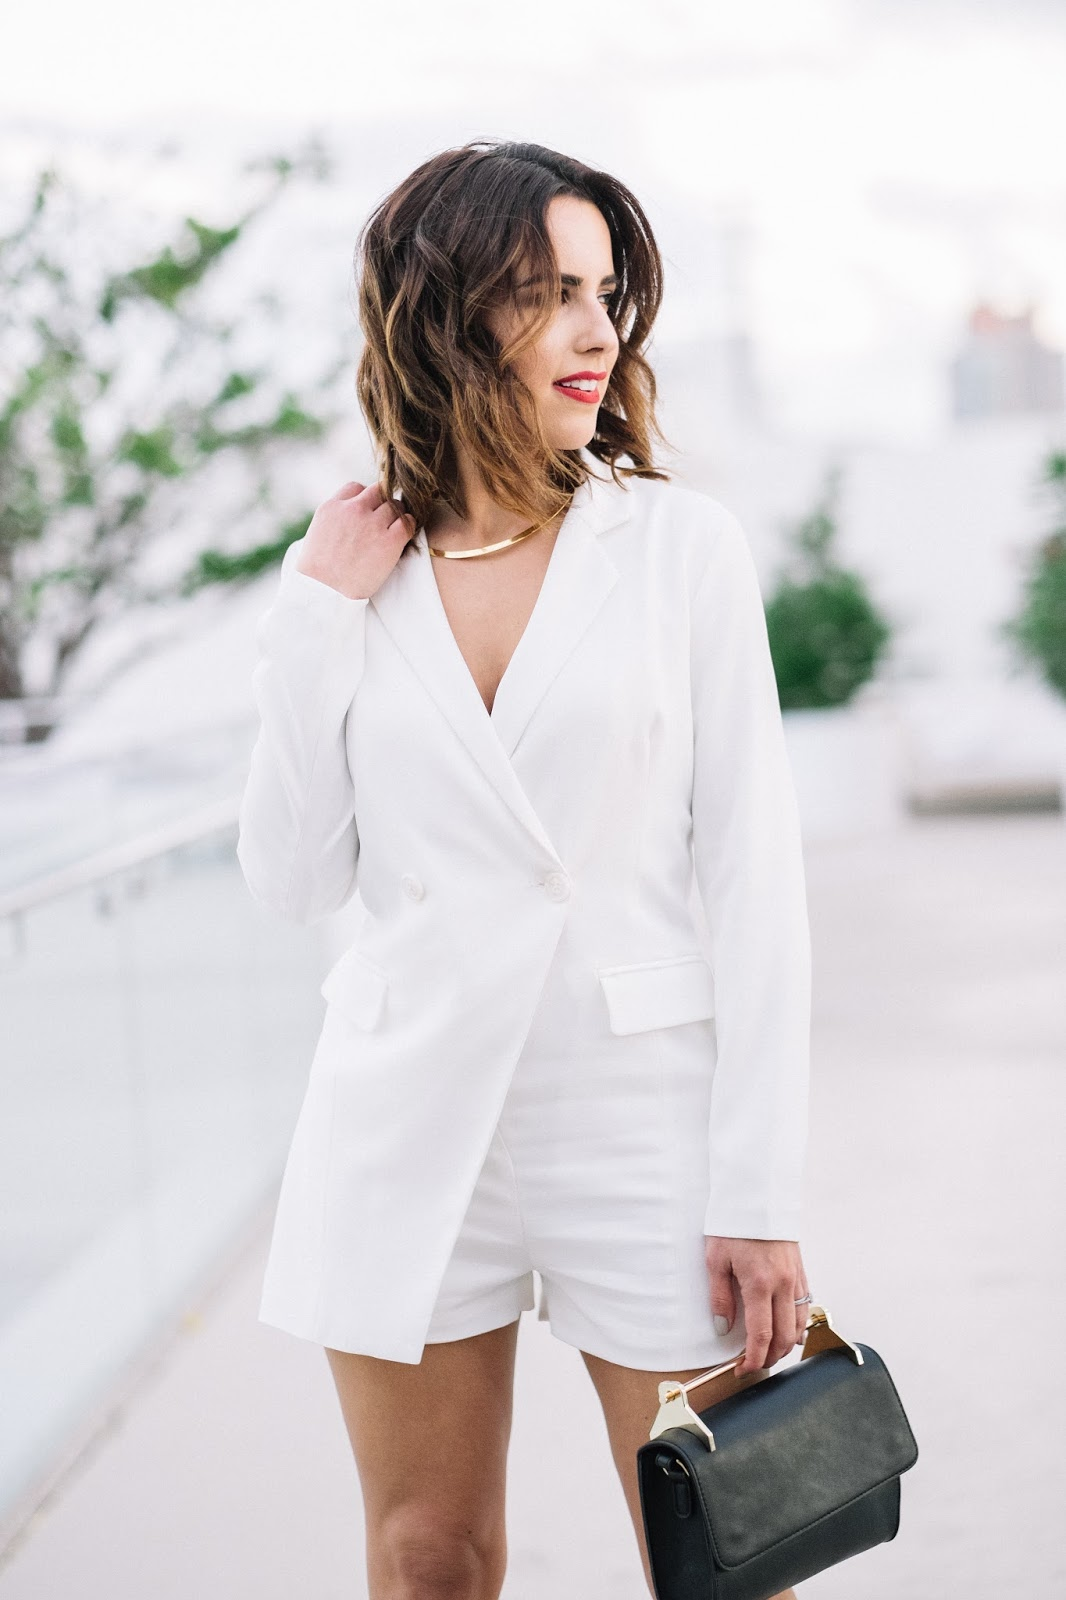 fashion-blogger-kelly-saks-tuxedo-romper